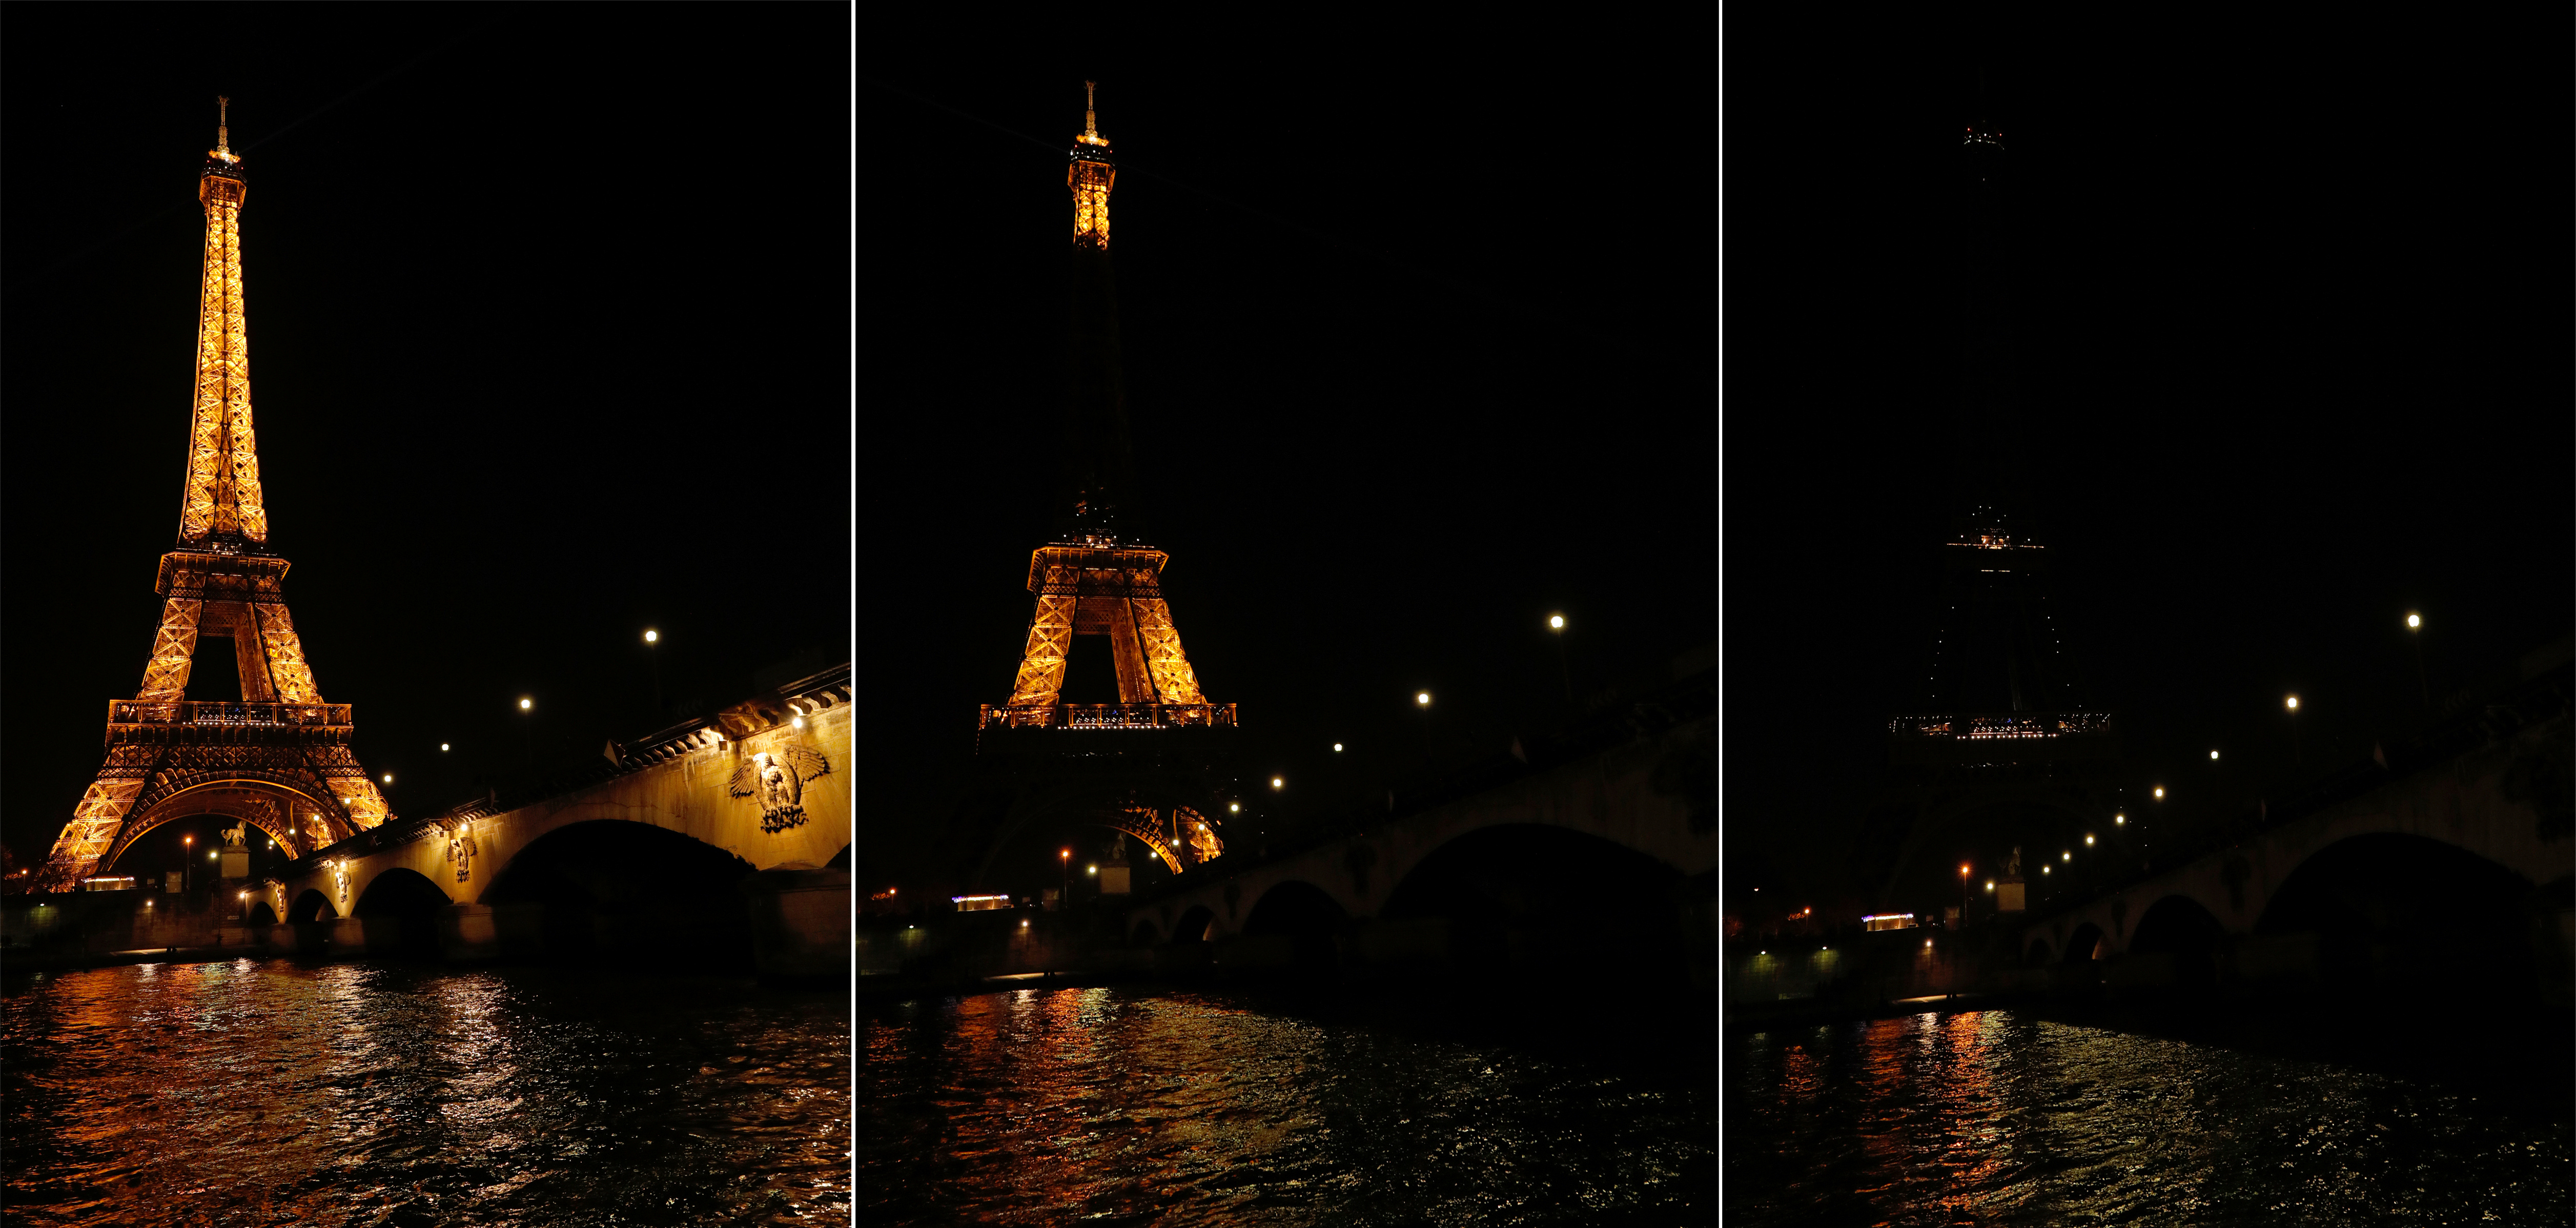 A combo picture shows the Eiffel Tower before (L) and during Earth Hour in Paris, France, March 25, 2017 at which lights are switched off around the world at 8:30 p.m. on Saturday evening to mark the 10th annual Earth Hour and to draw attention to climate change.